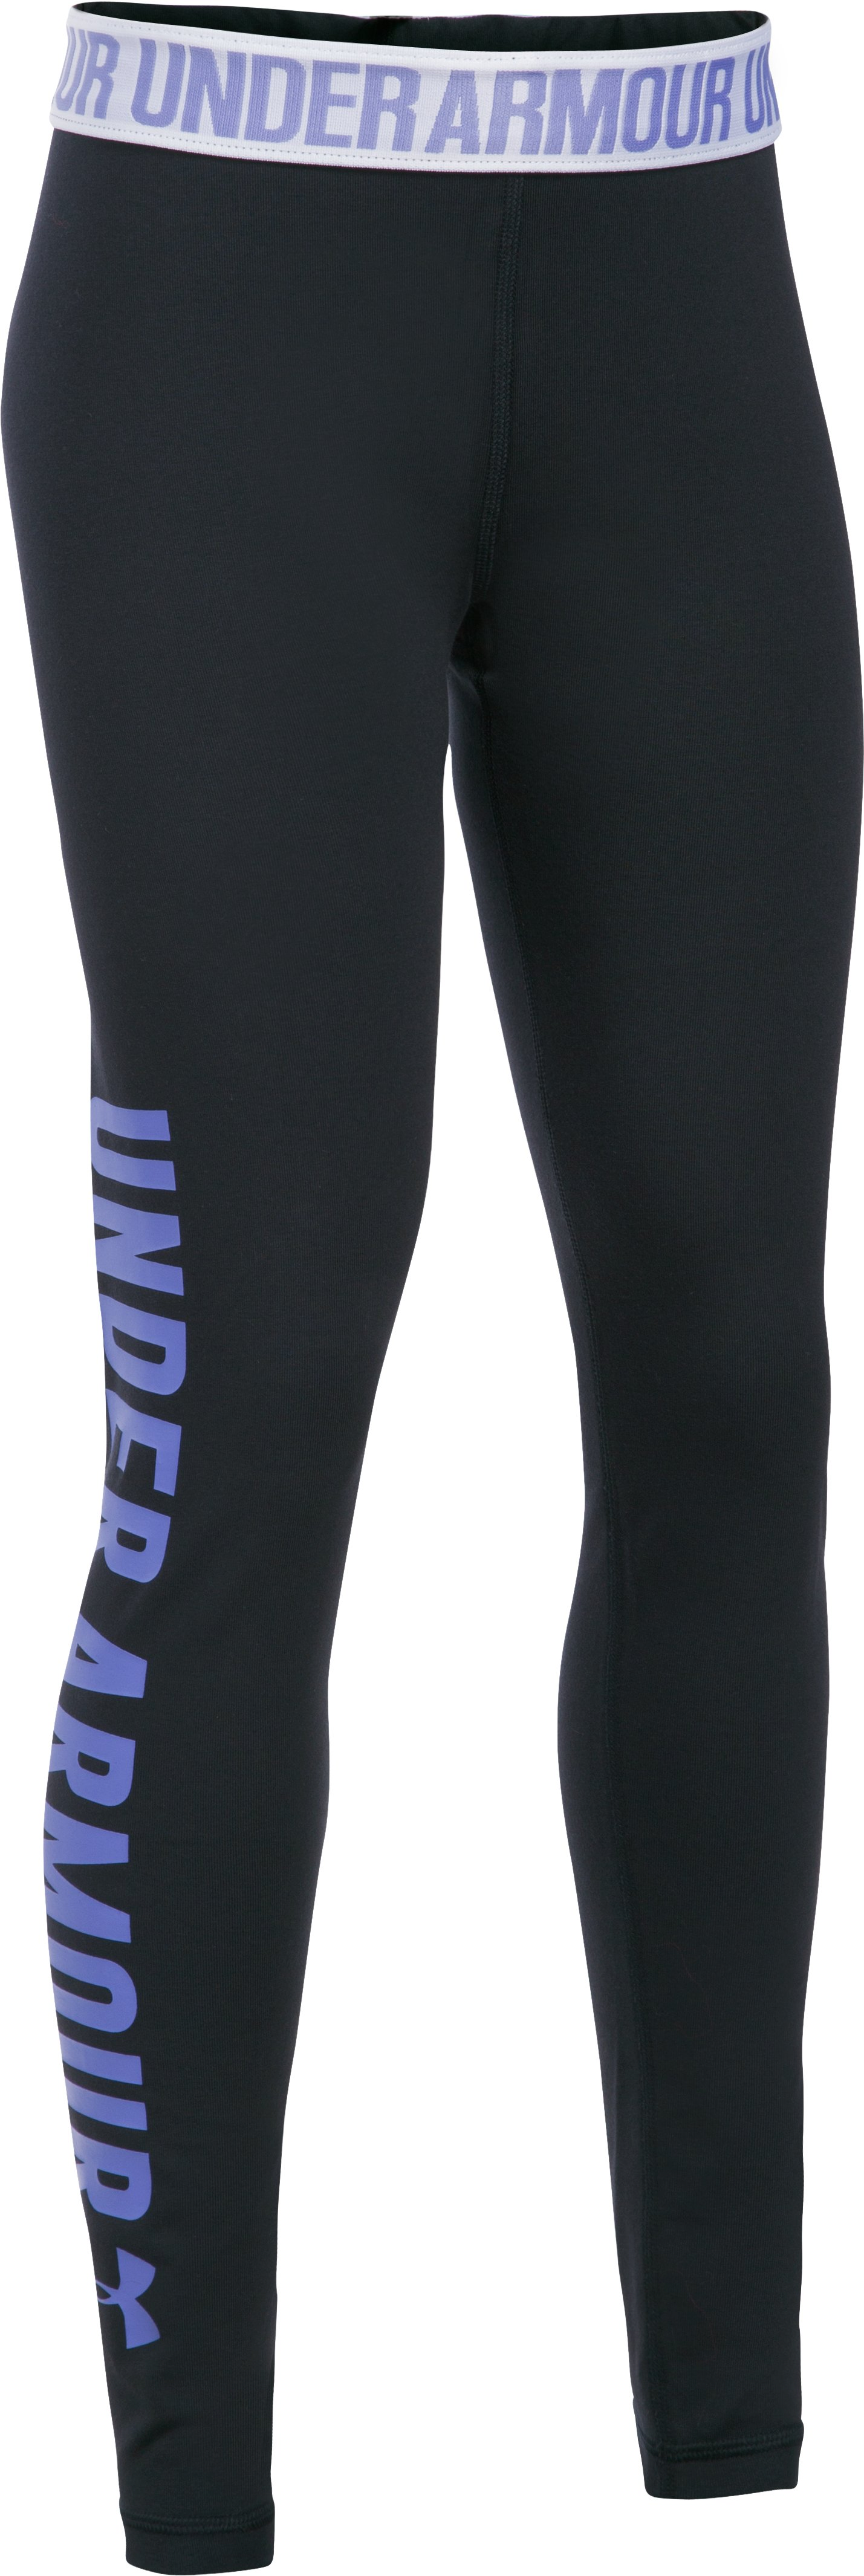 Girls' UA Favorite Campus Novelty Legging, Black